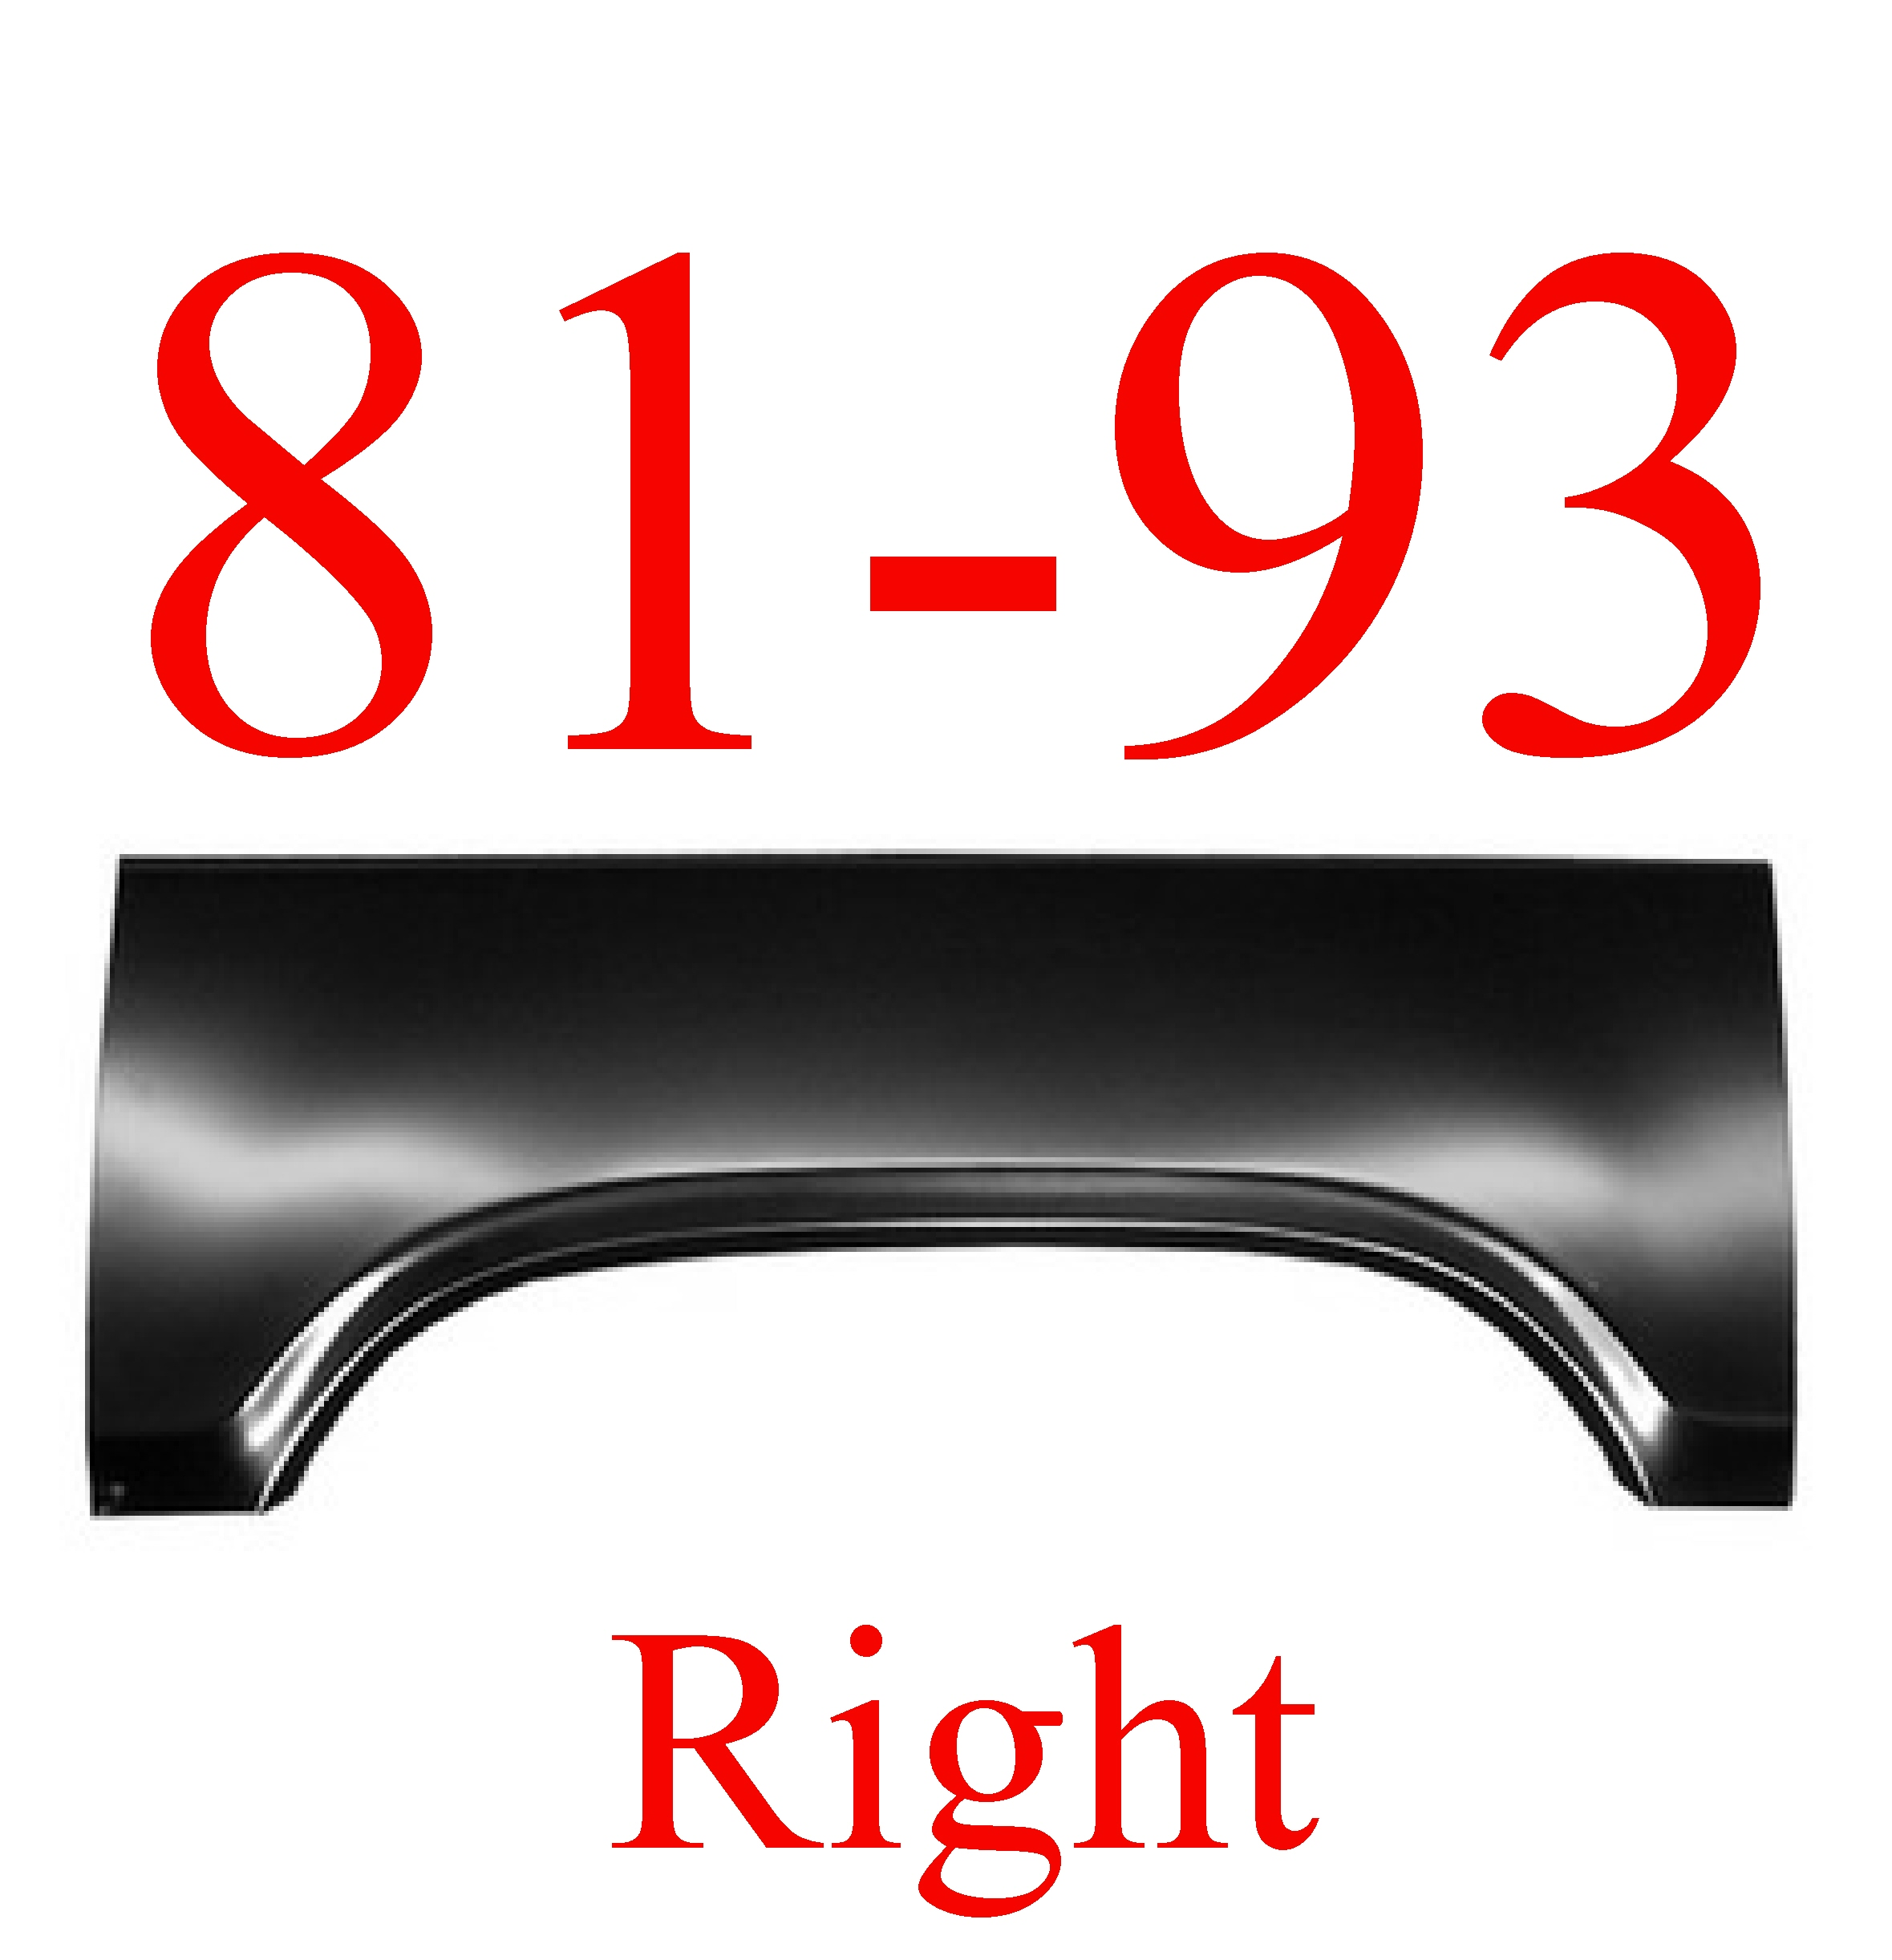 81-93 Dodge Ram RIGHT Upper Arch Panel